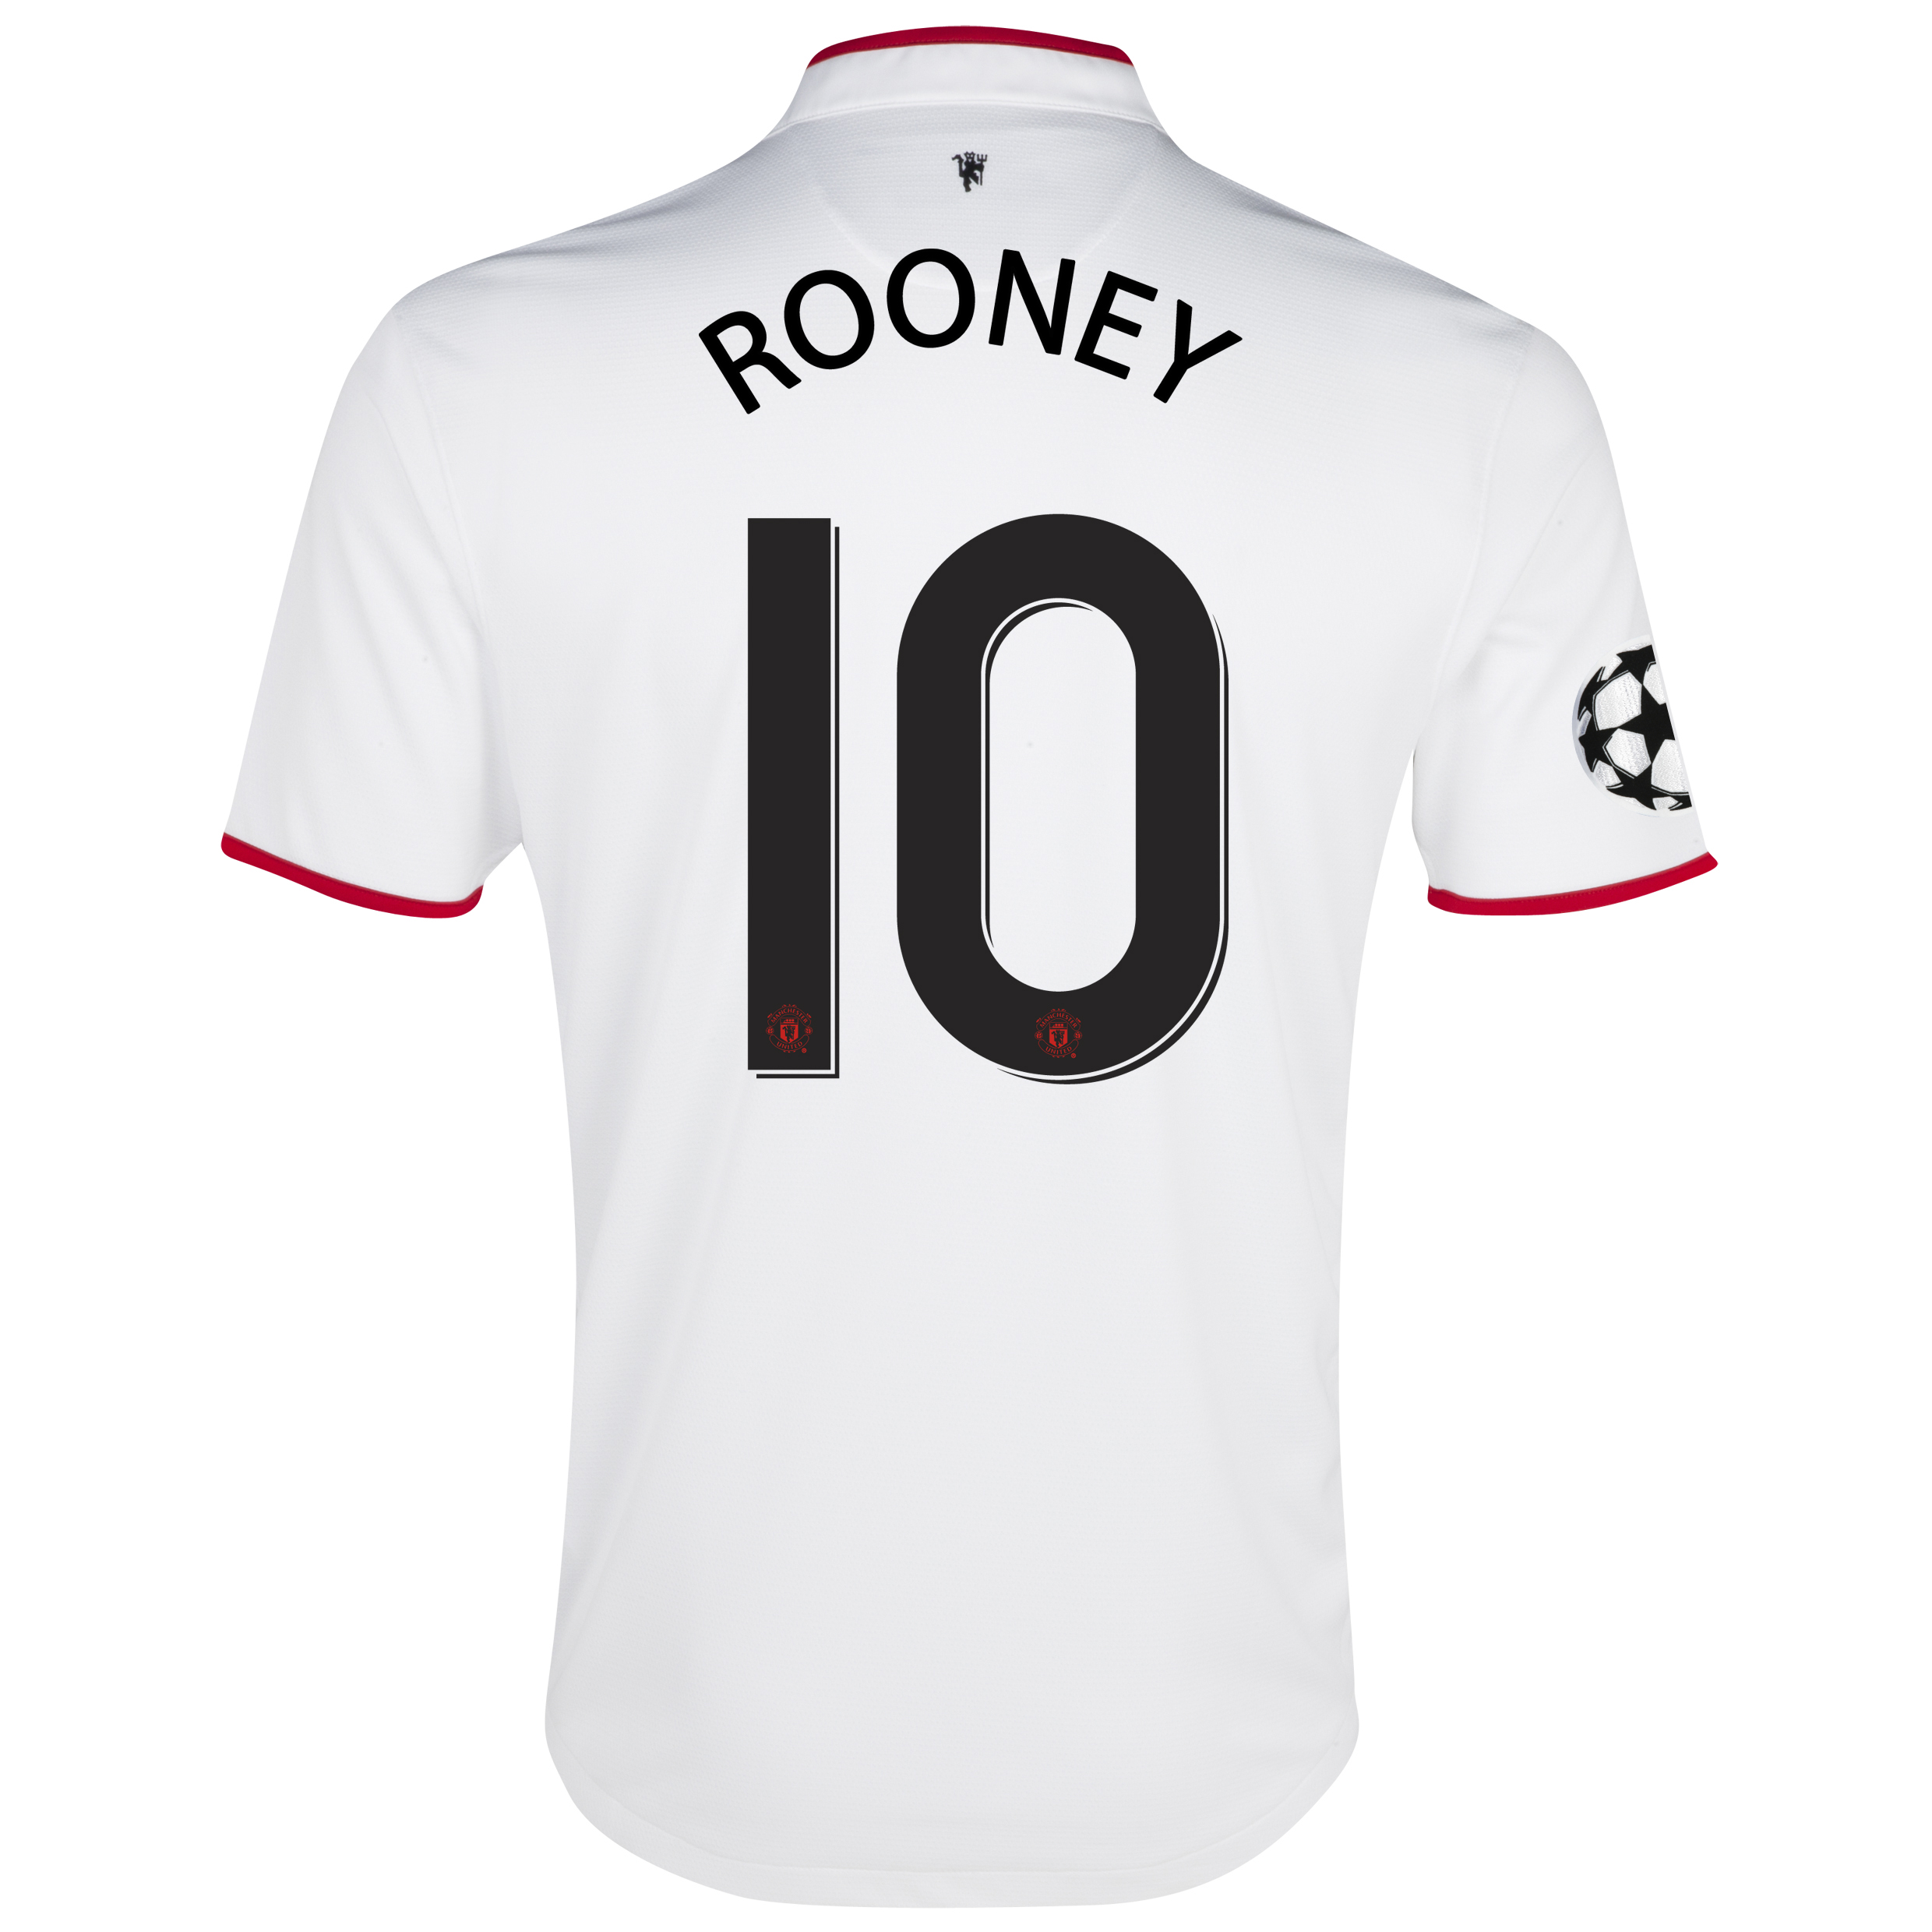 Manchester United UEFA Champions League Away Shirt 2012/13 with Rooney 10 printing